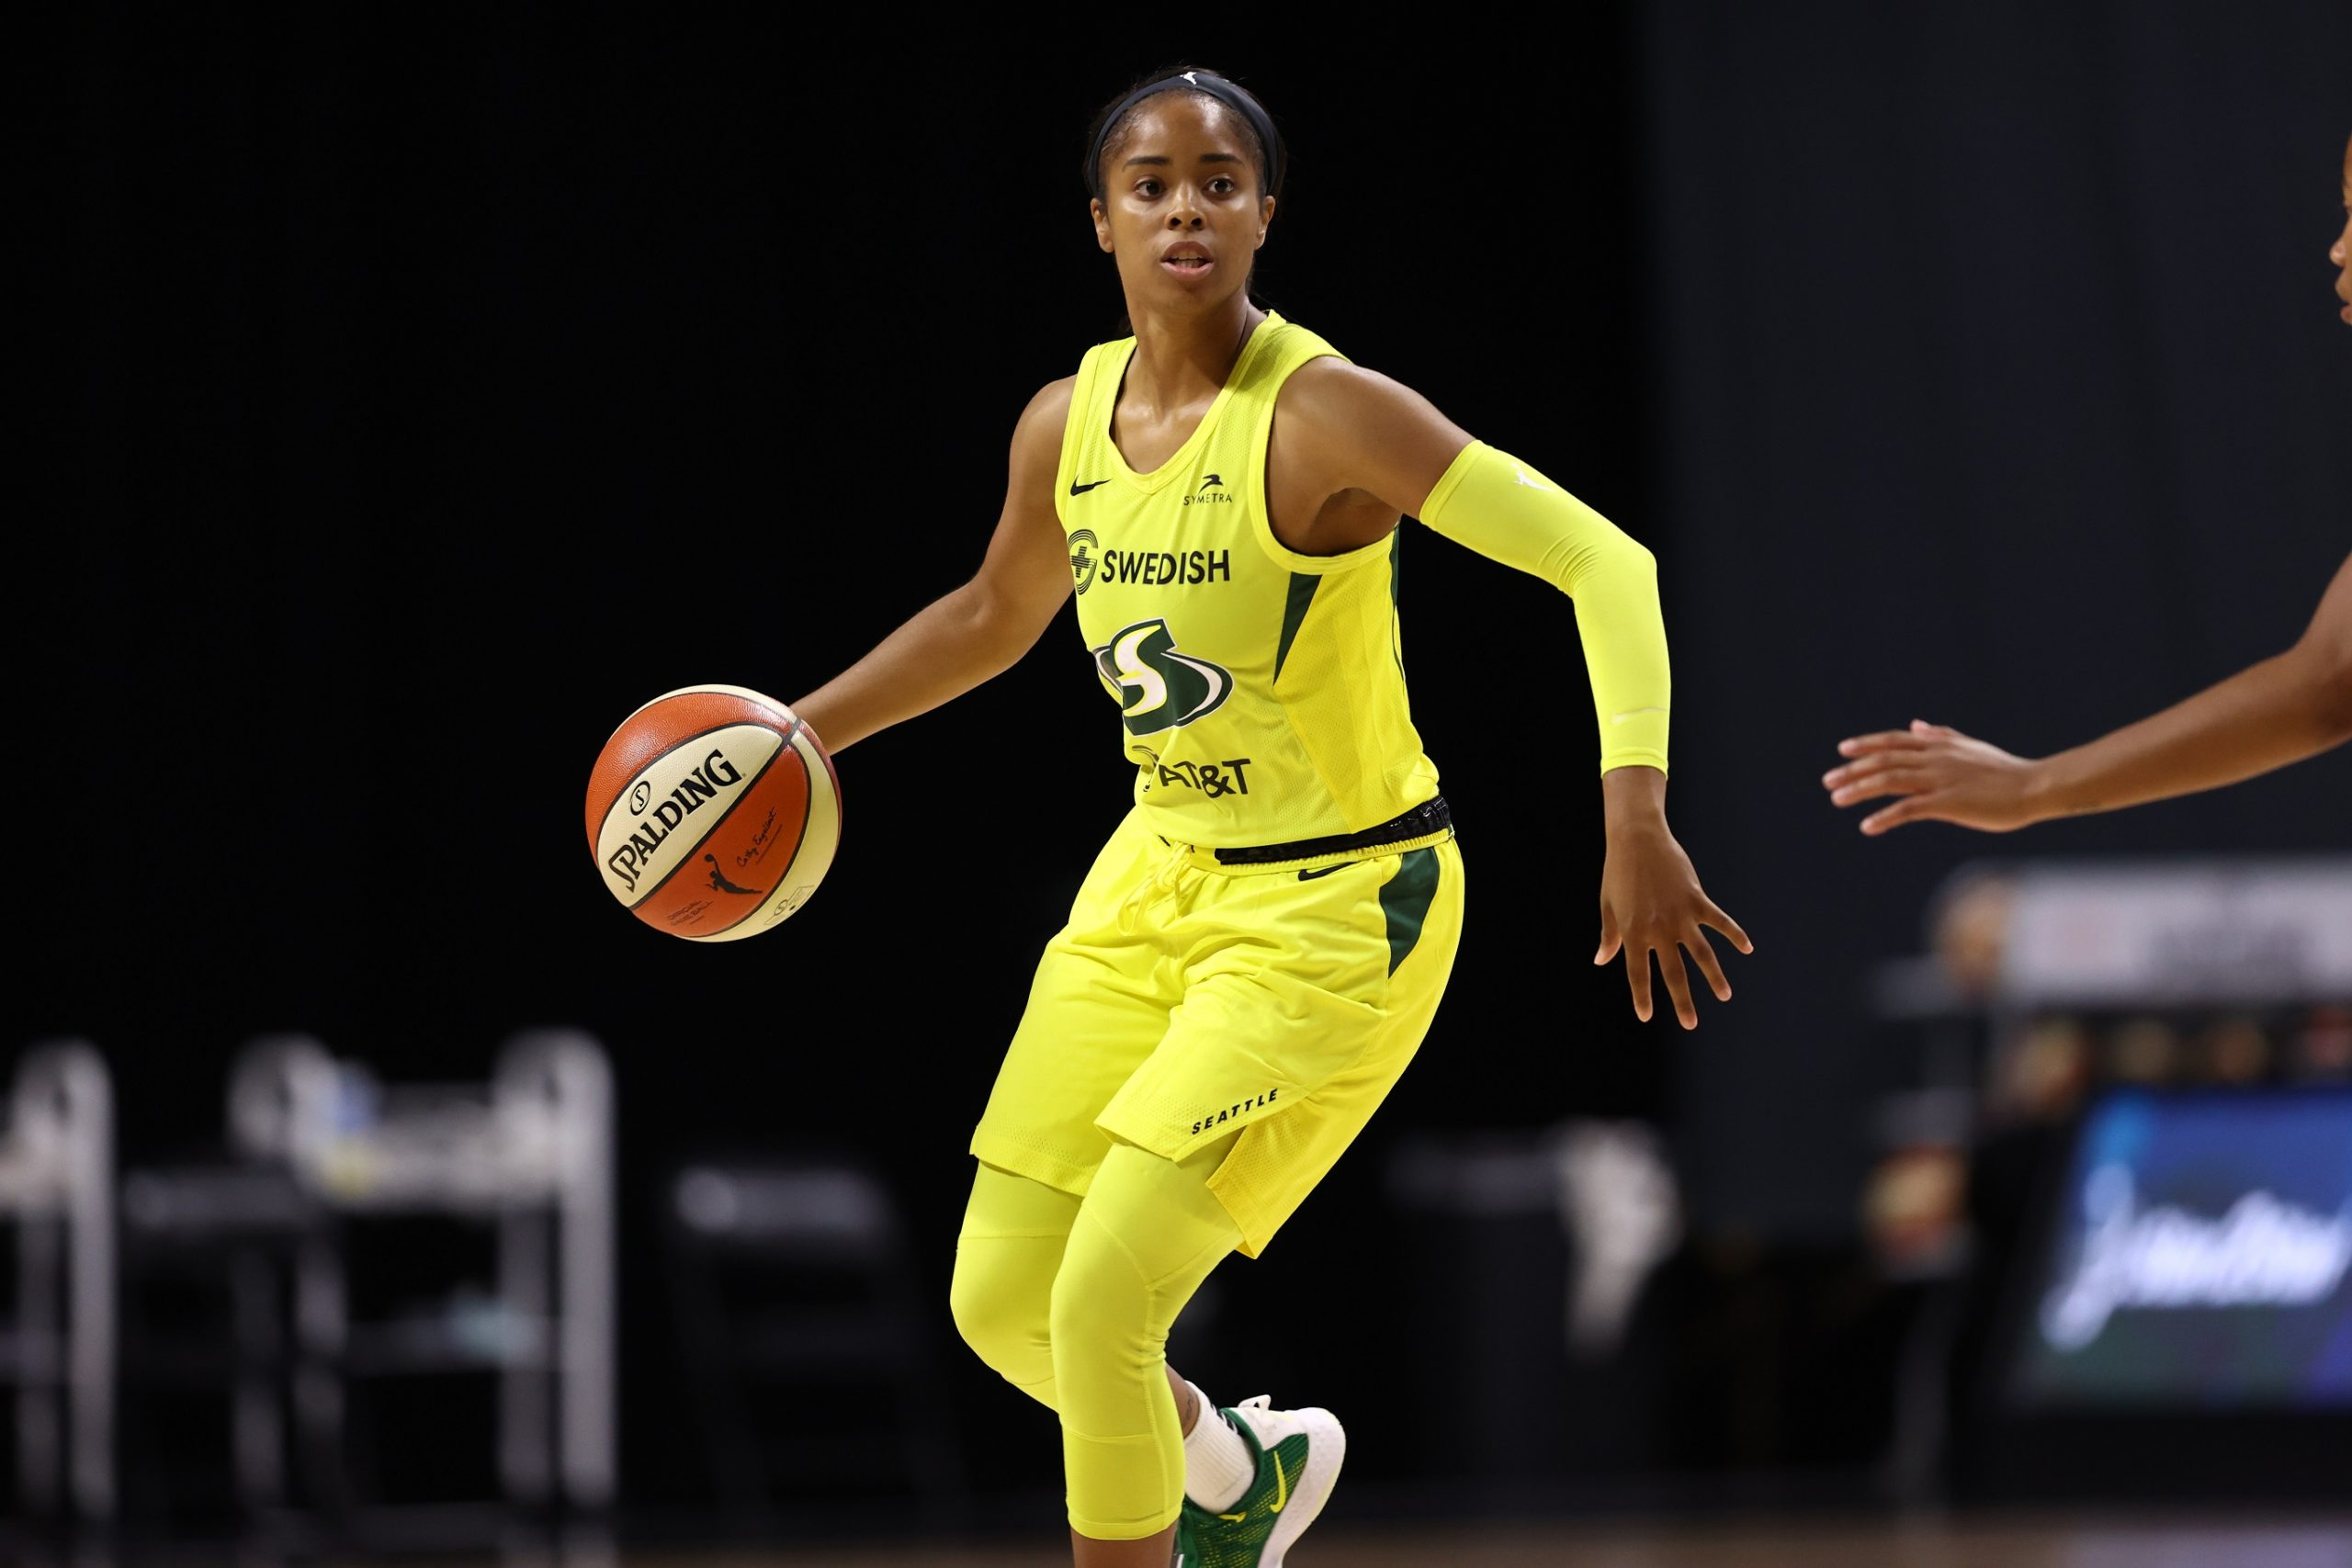 PALMETTO, FL - AUGUST 14: Jordin Canada #21 of the Seattle Storm handles the ball during the game against the Dallas Wings on August 14, 2020 at Feld Entertainment Center in Palmetto, Florida. Copyright 2020 NBAE (Photo by Ned Dishman/NBAE via Getty Images)